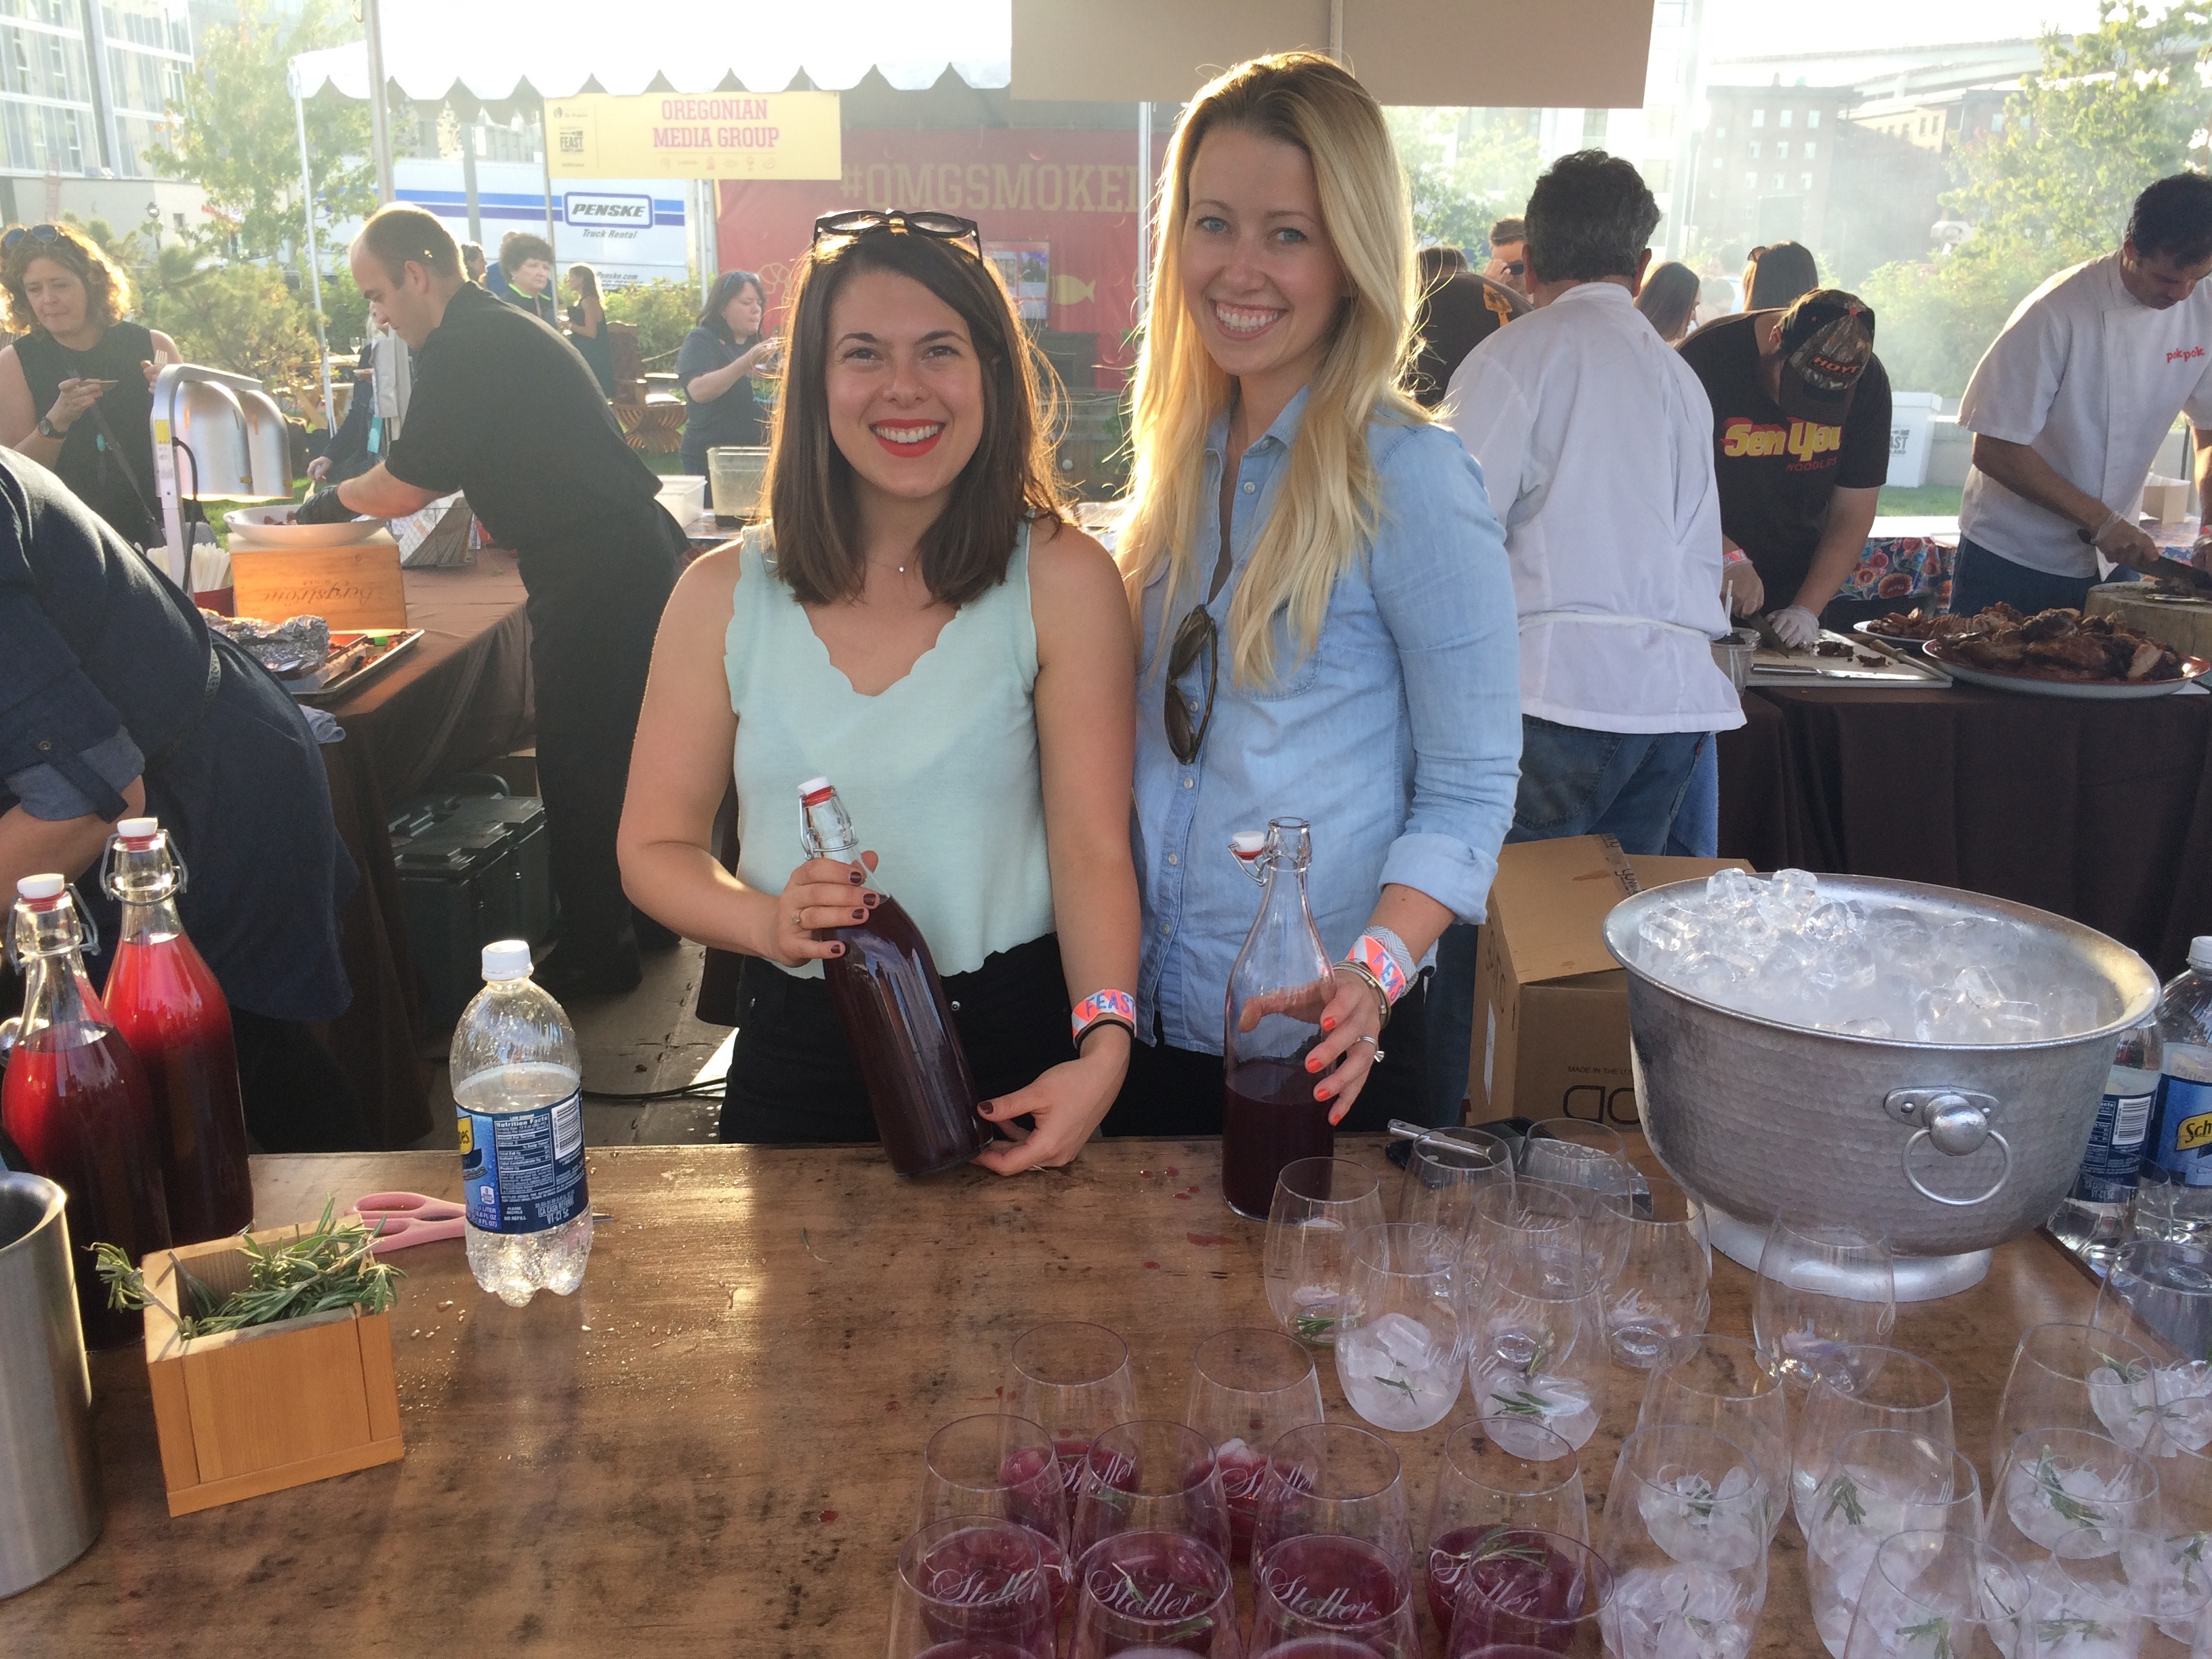 Mayme Bermand and Betsy Hannaford from Stoller Family Estate at Smoked! during Feast Portland. (photo by D.J. Paul)